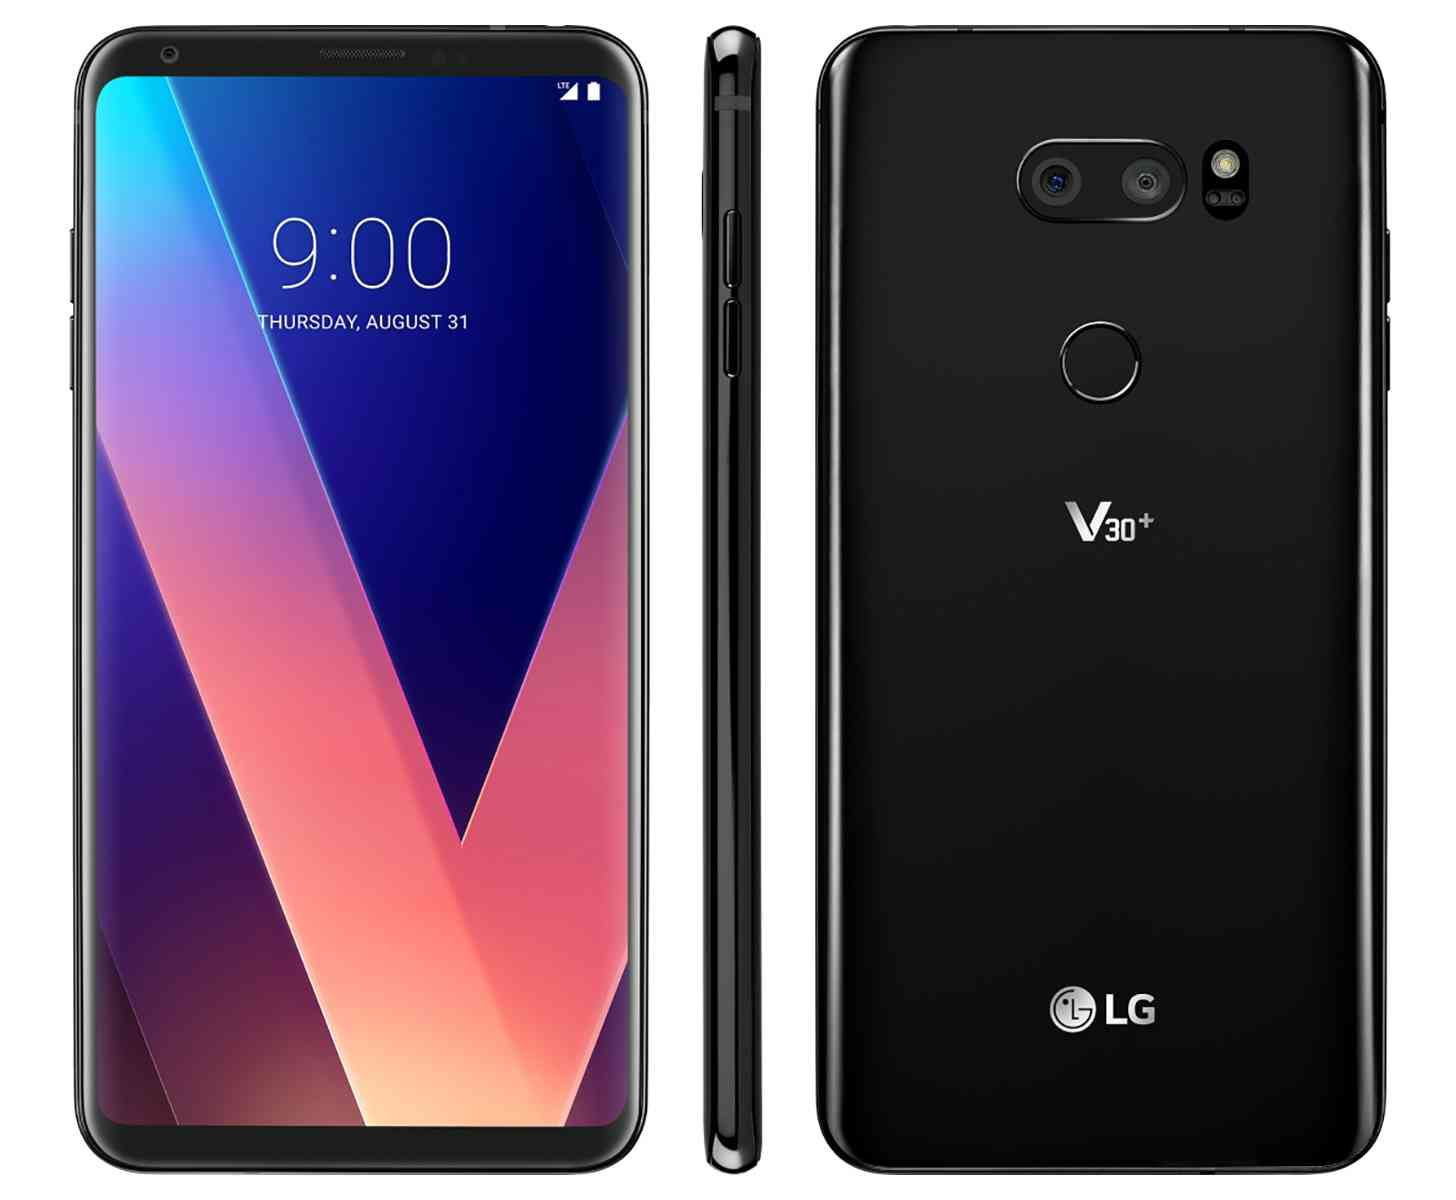 The LG V30 Plus will finally launch in India on December 13